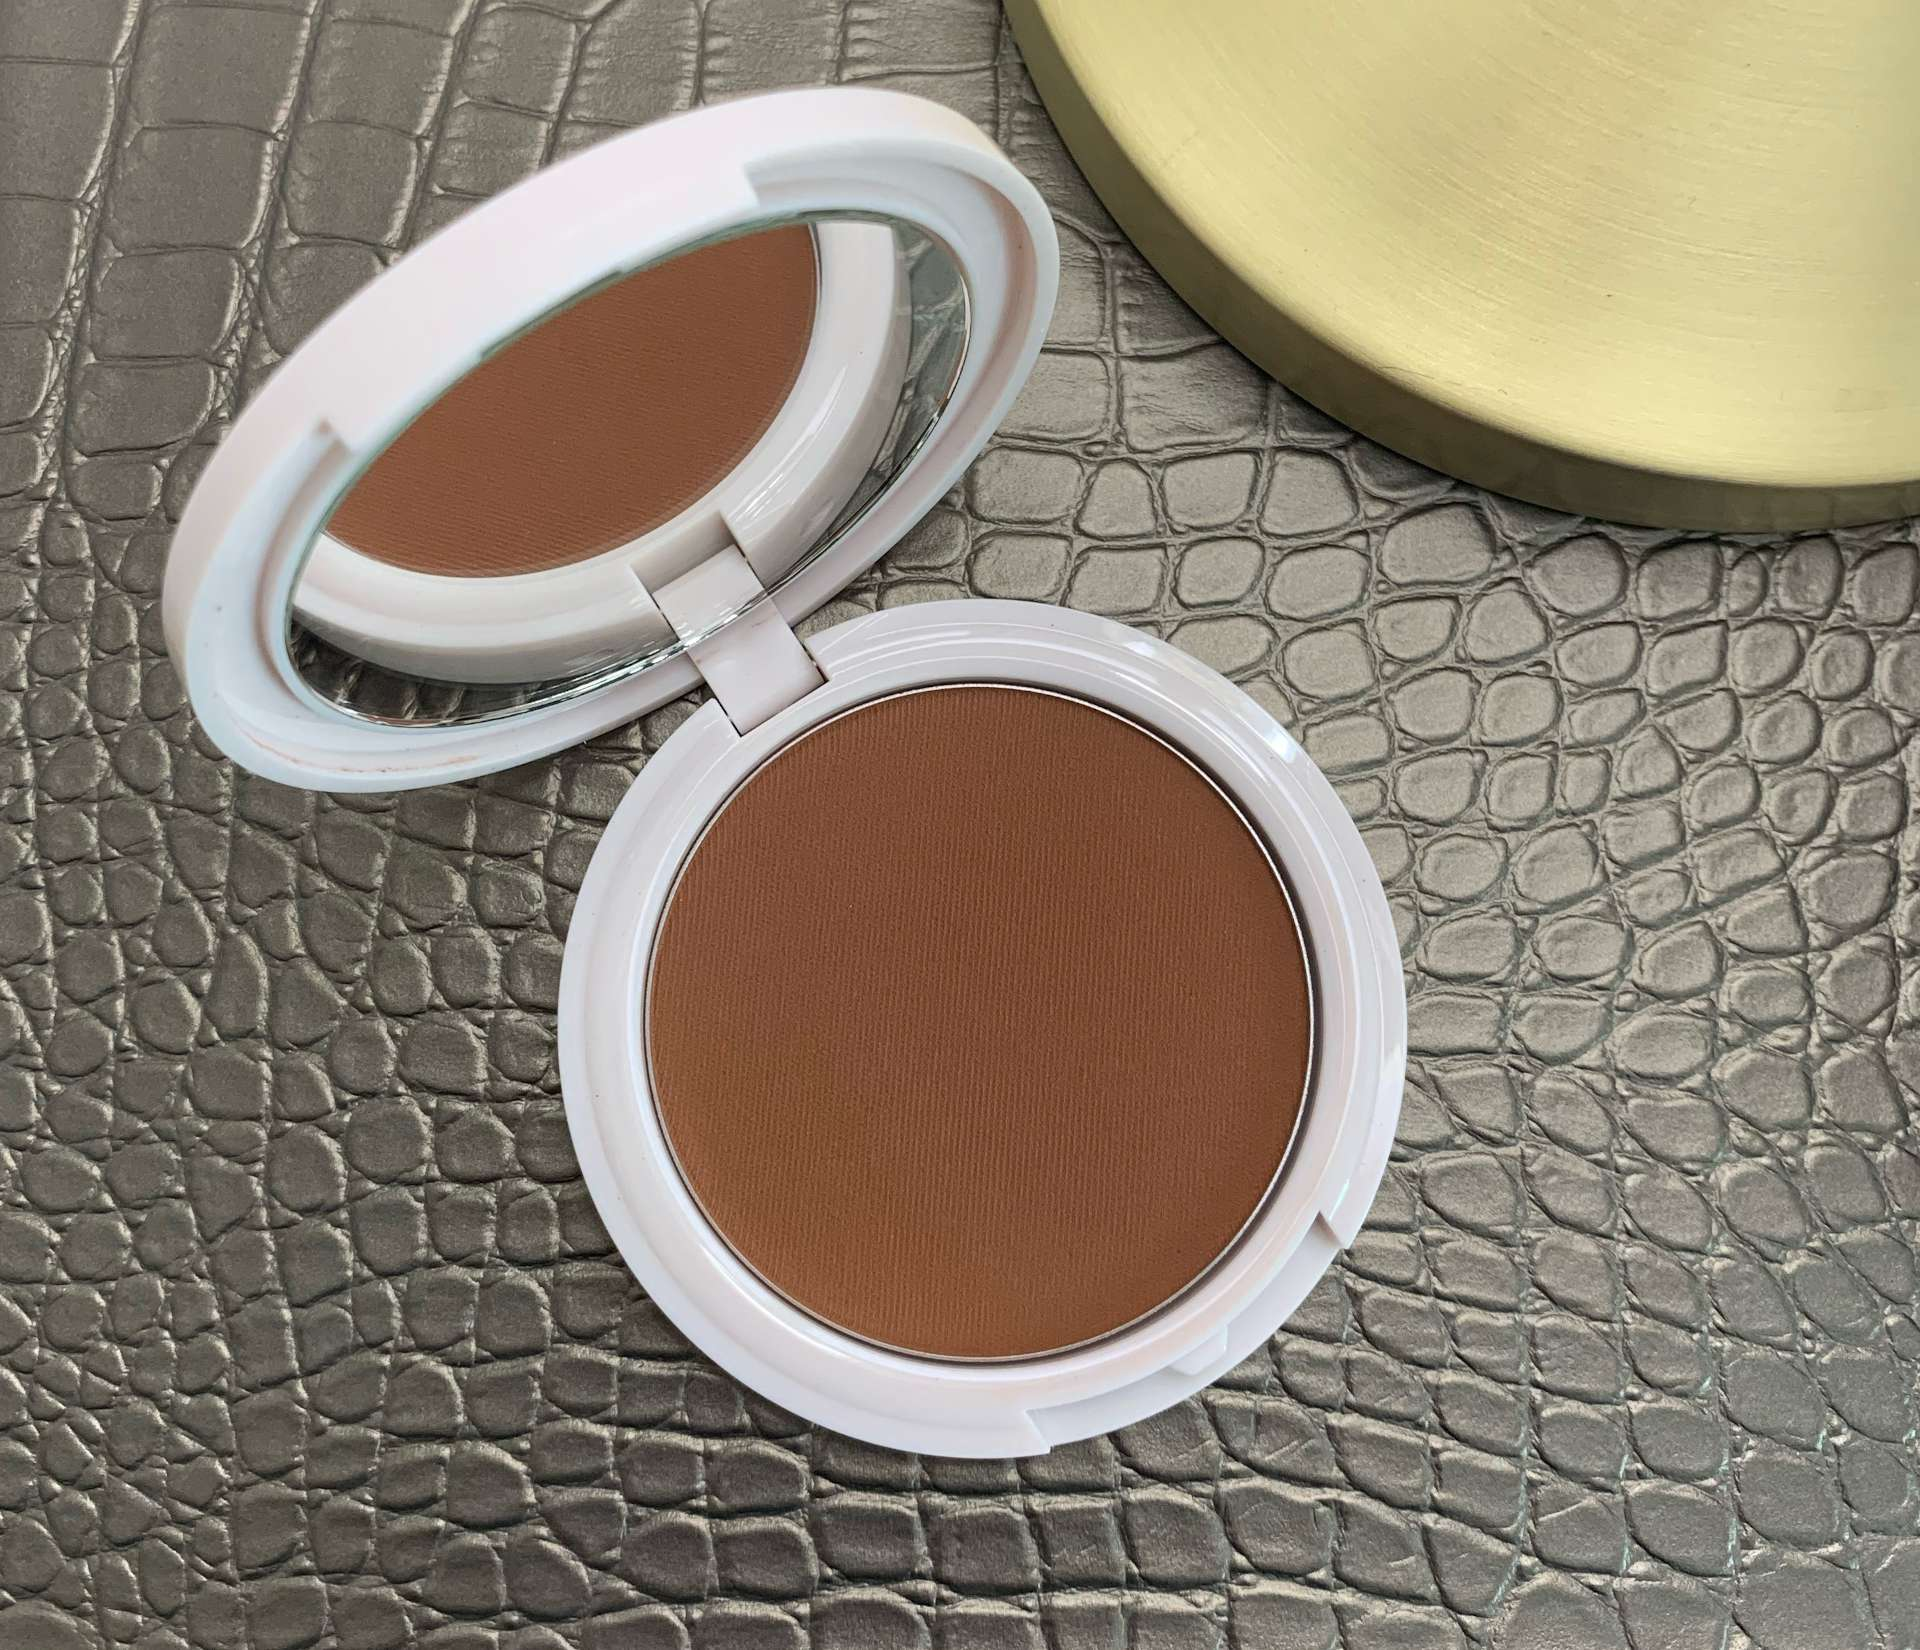 Coloured Raine Bronzer Cinna-Bae Swatch dark skin